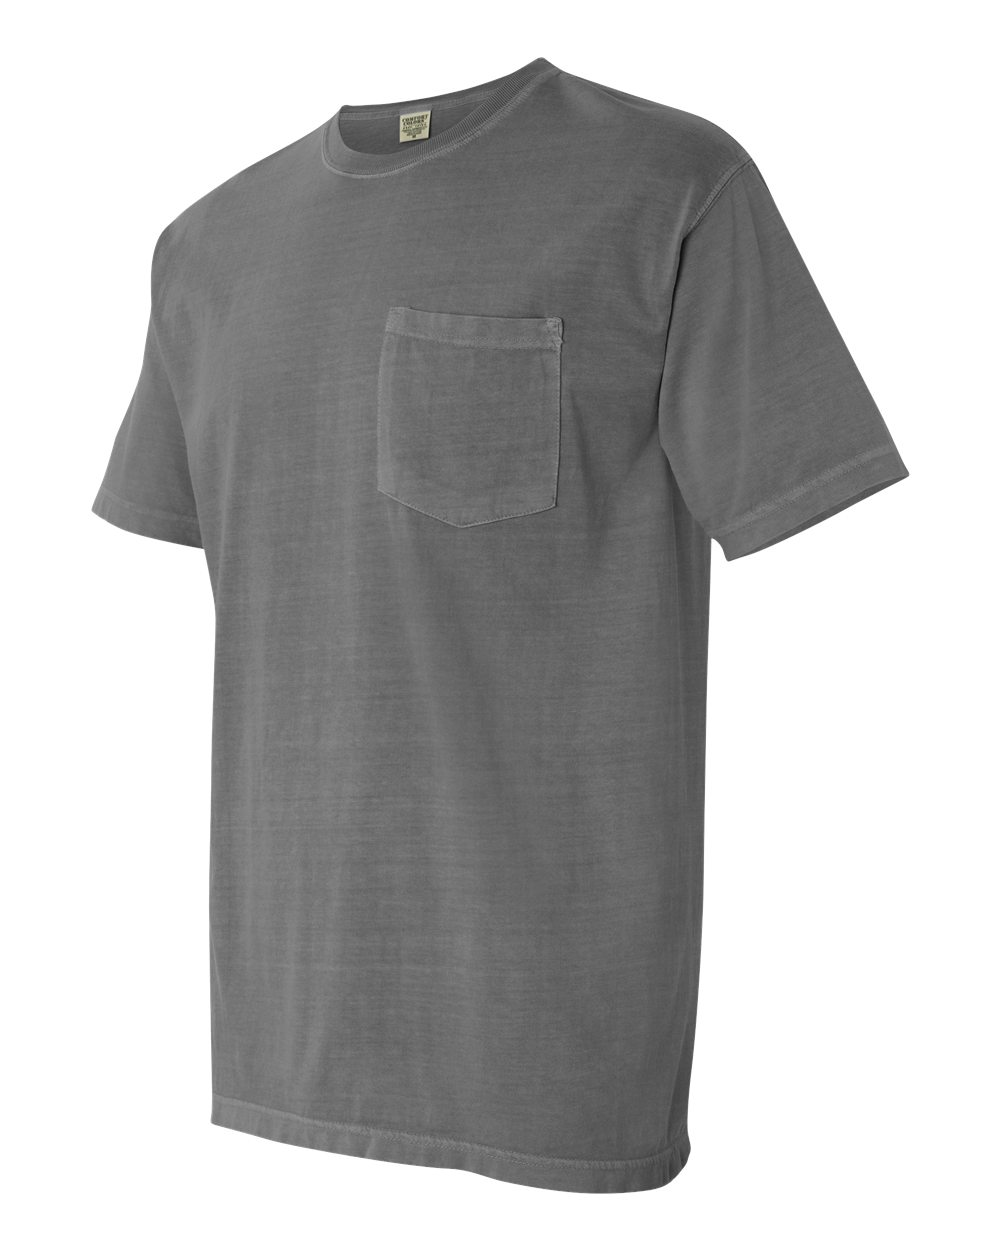 Comfort-Colors-Men-039-s-6-1-oz-Garment-Dyed-Pocket-T-Shirt-6030CC-S-3XL thumbnail 42